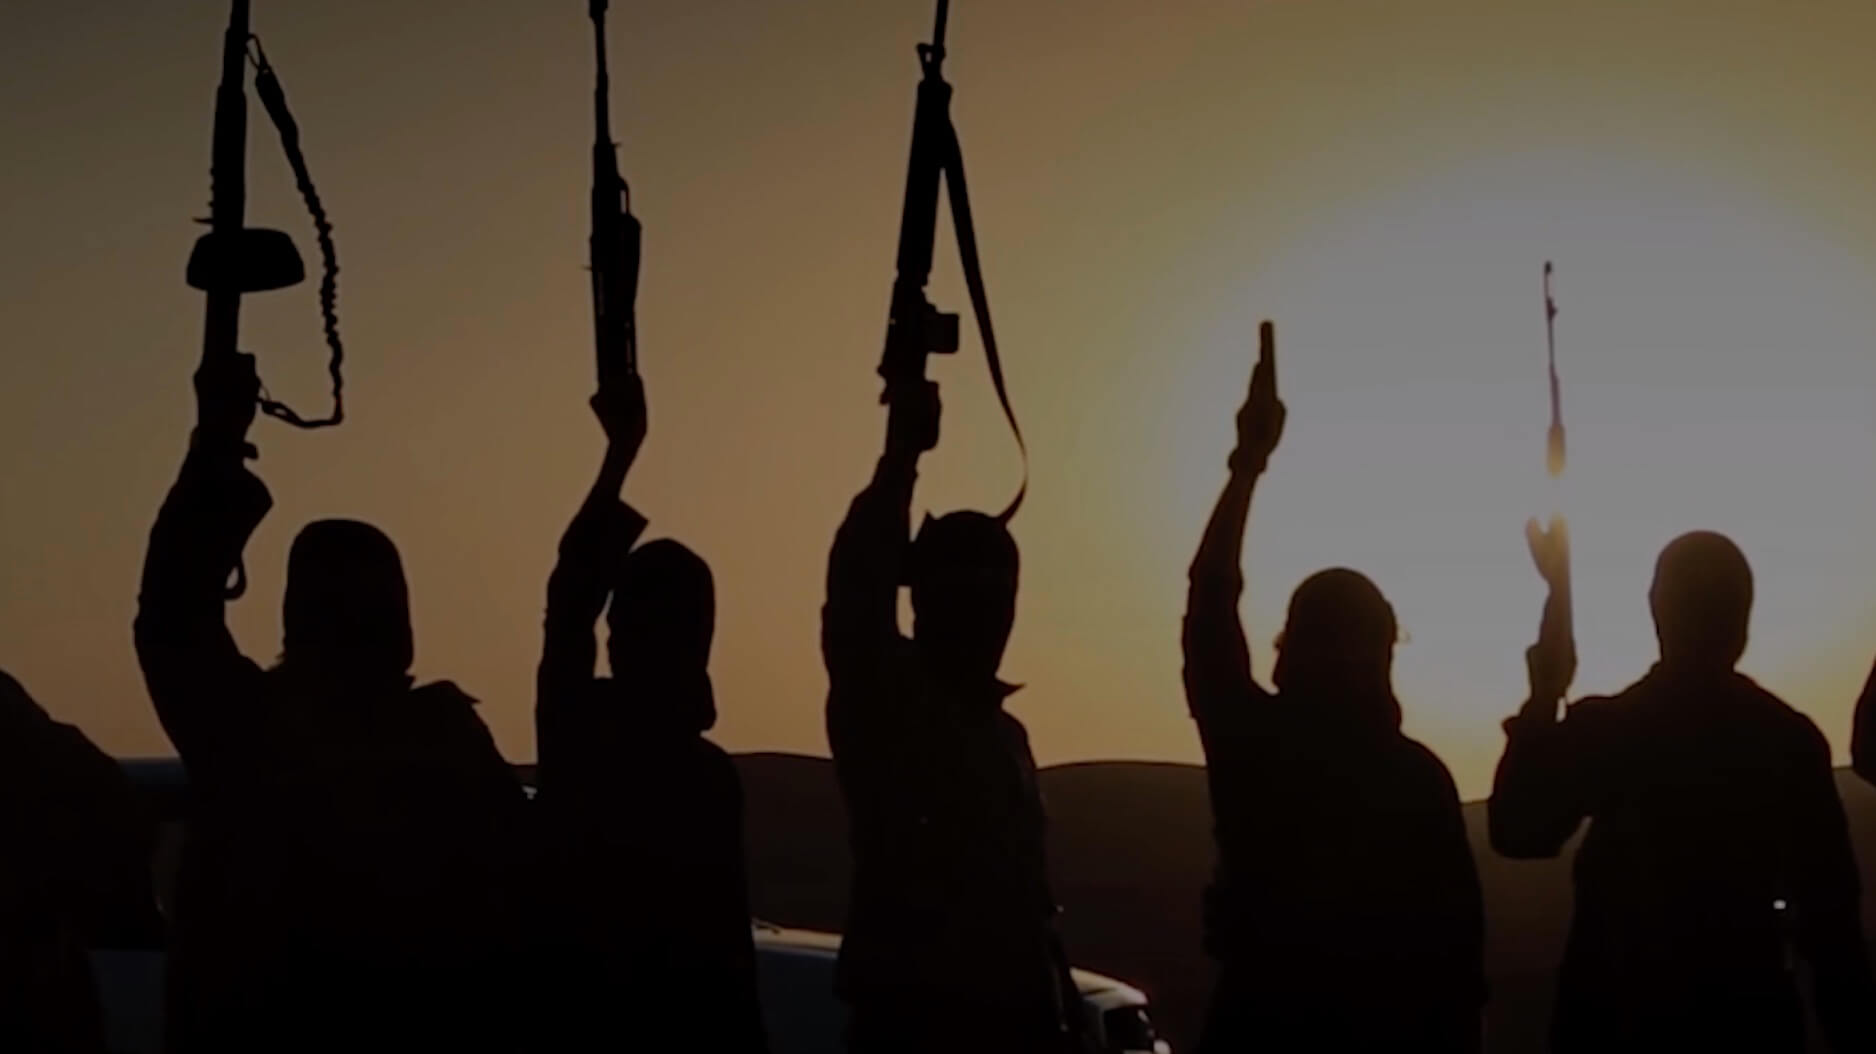 You Should Fear Allah In The Islamic State Caliphate